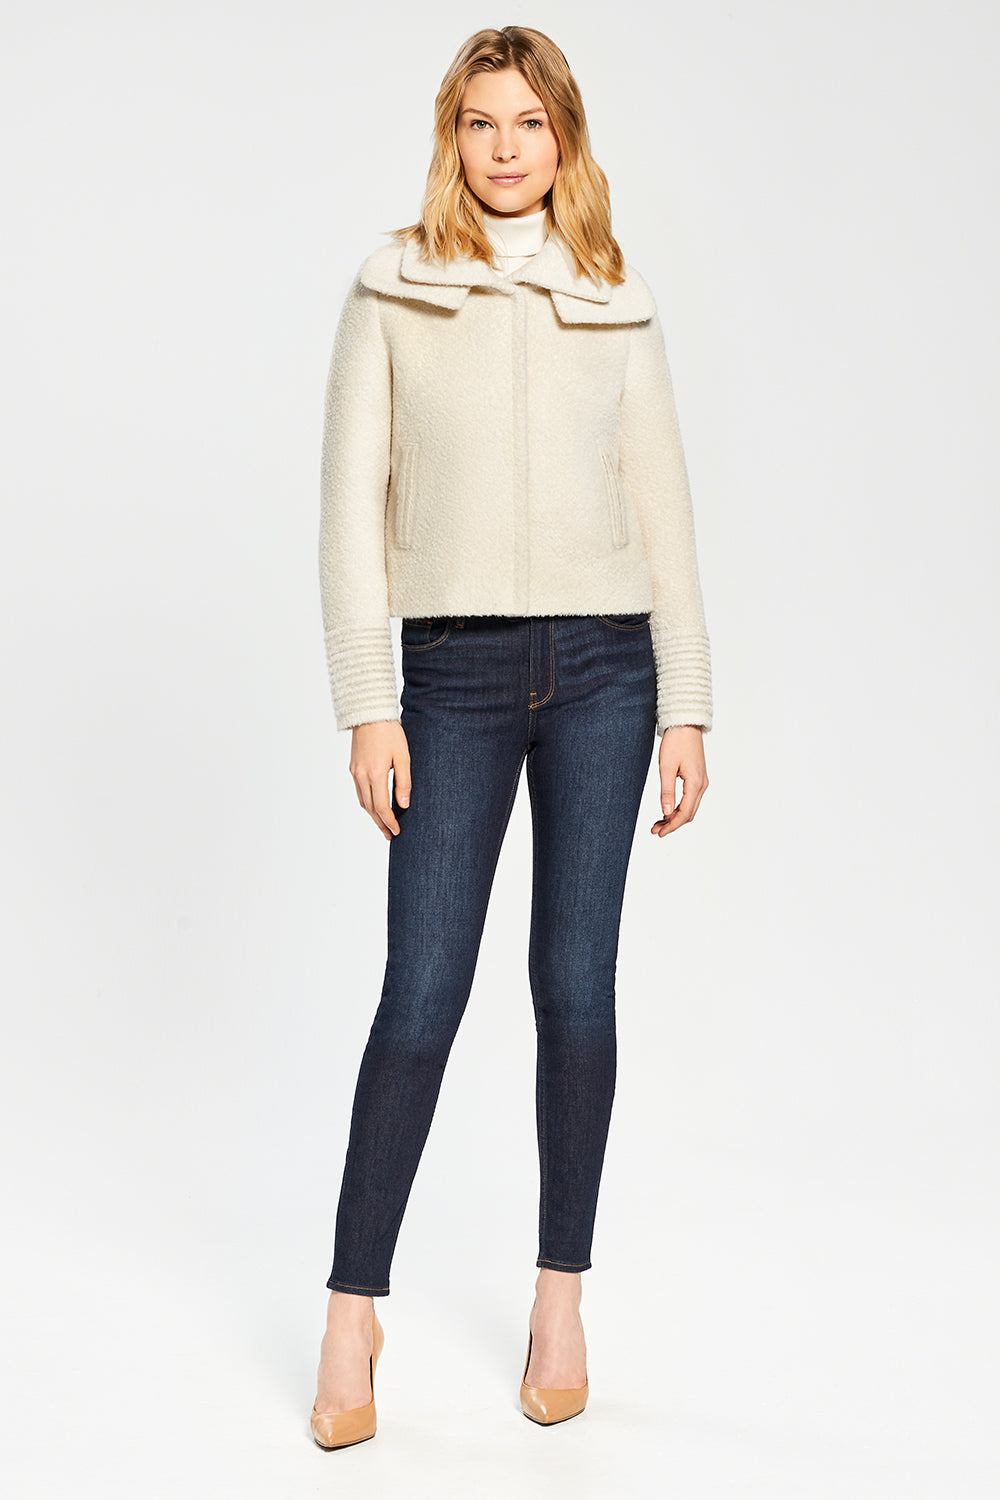 Sentaler Bouclé Alpaca Moto Jacket with Signature Double Collar featured in Bouclé Alpaca and available in Ivory. Seen from front.